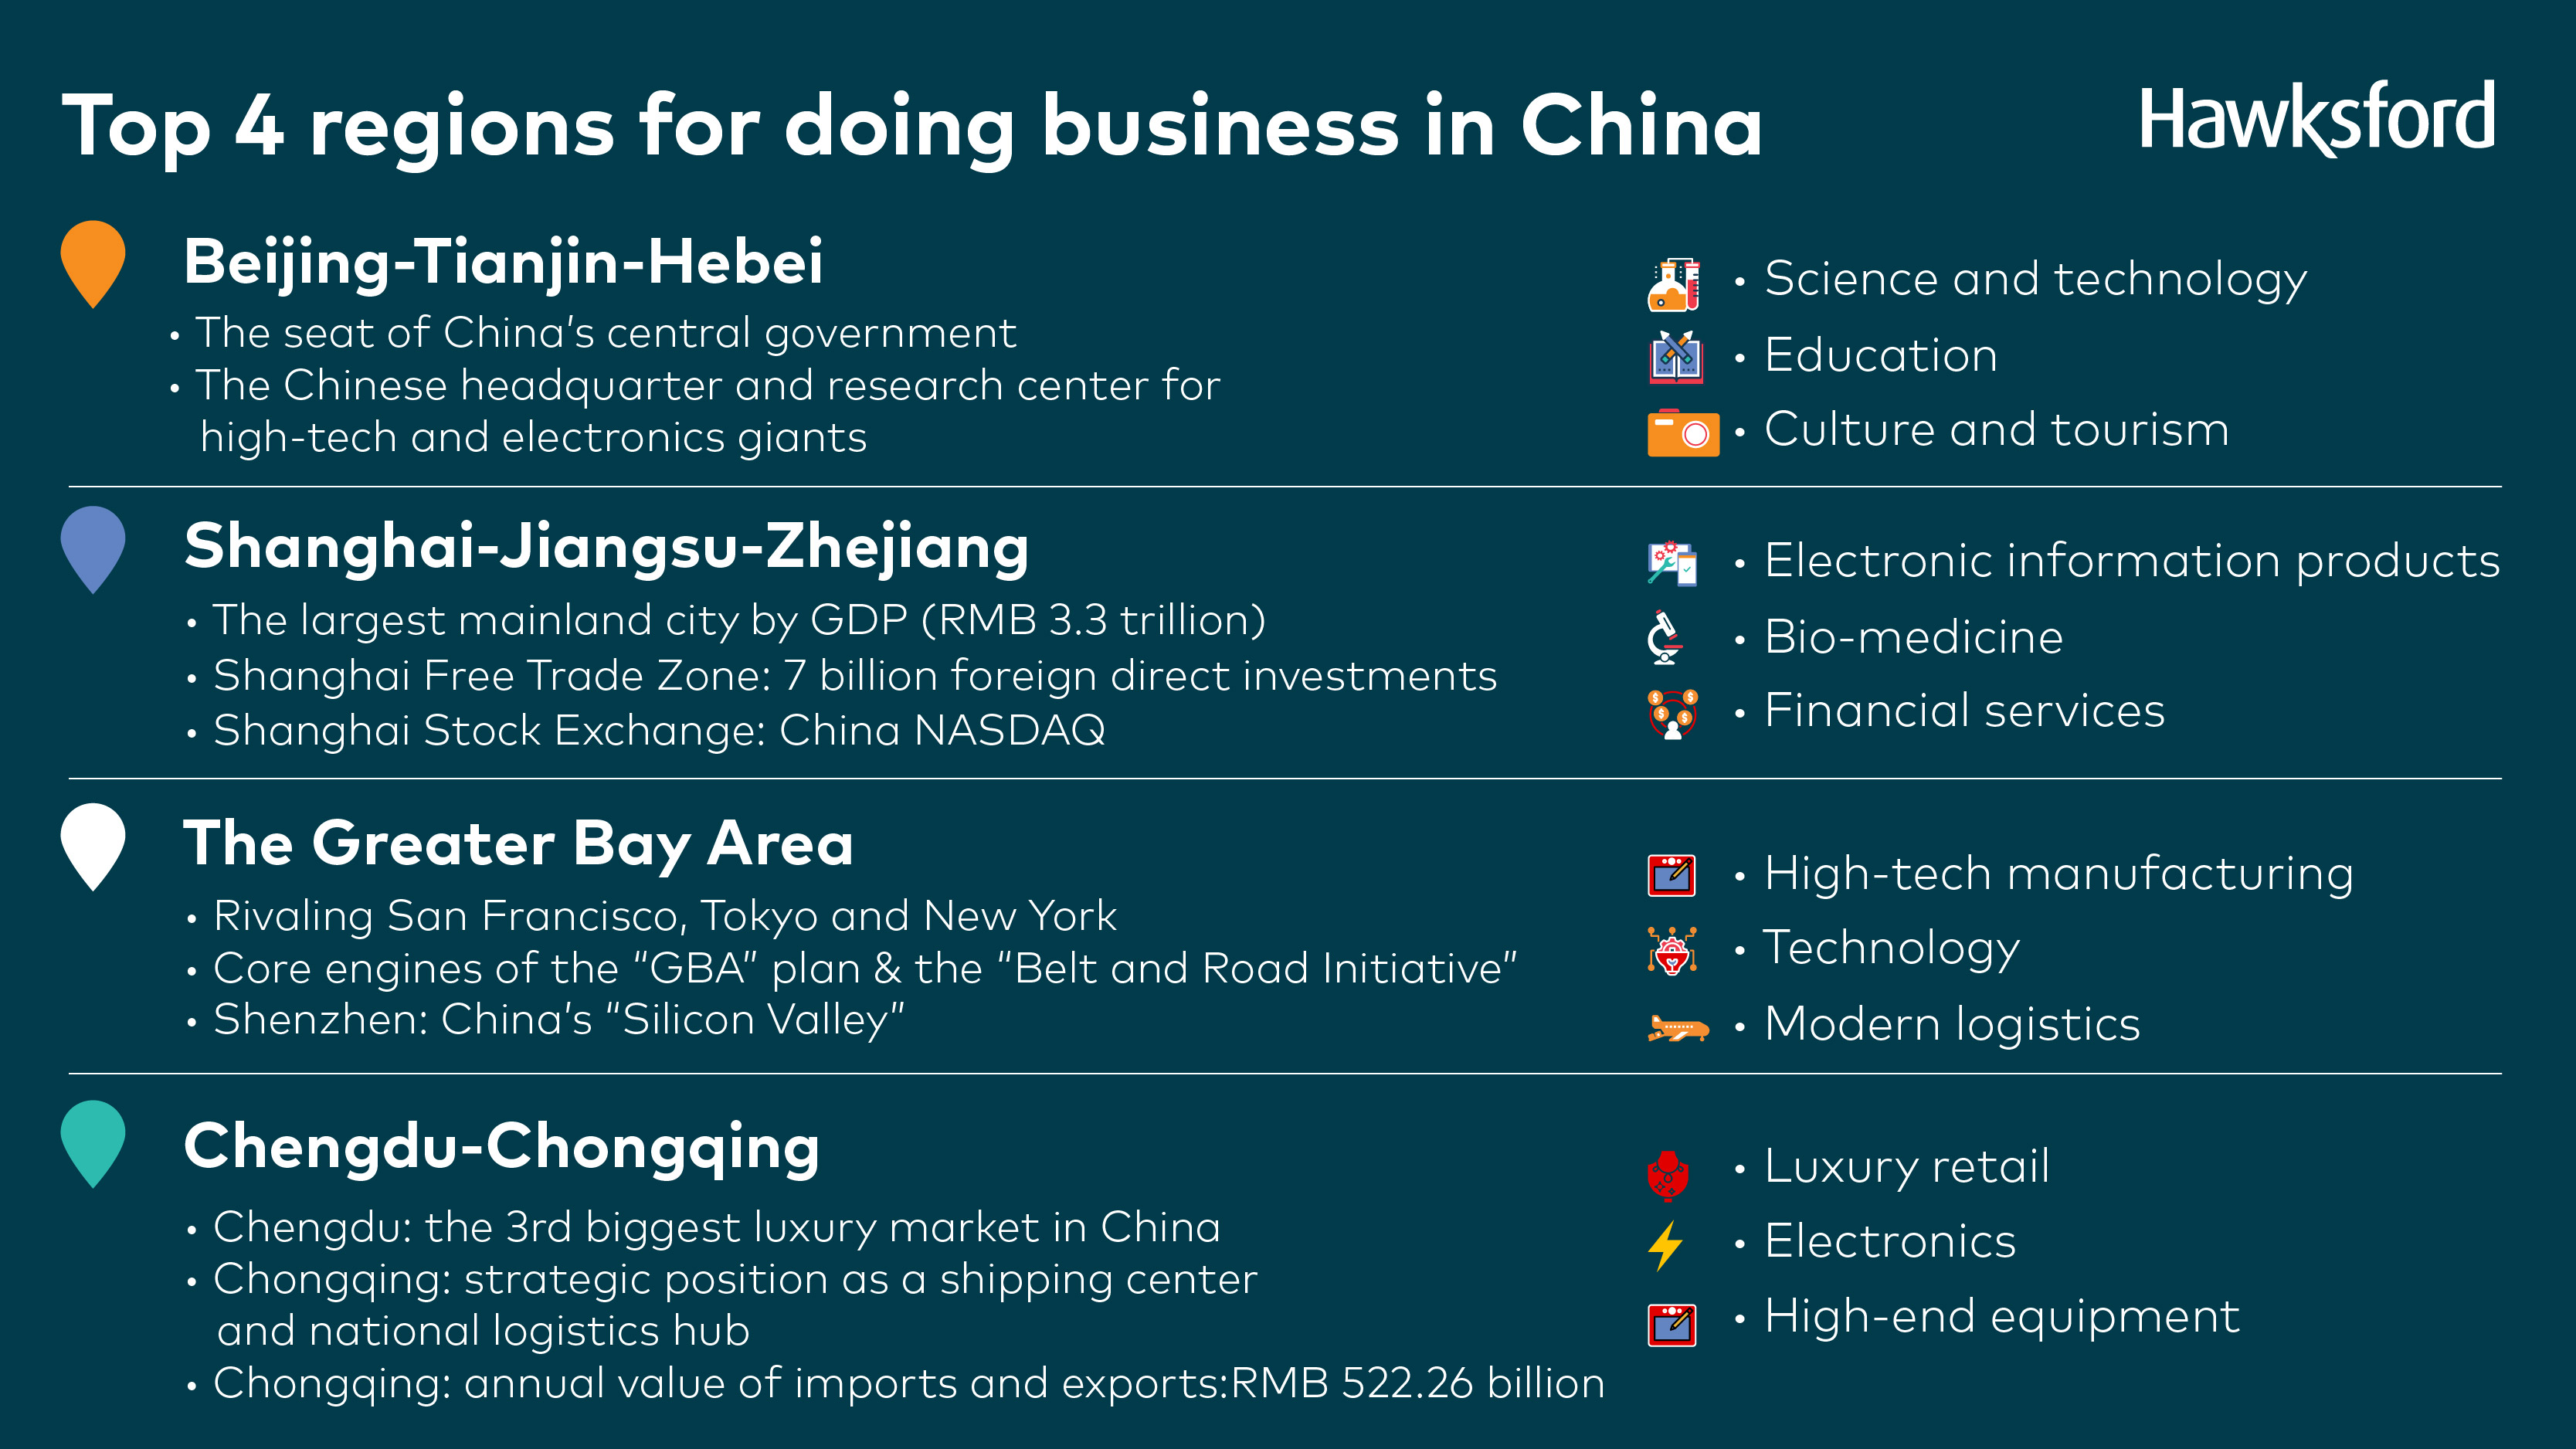 Top 4 Regions for Doing Business in China